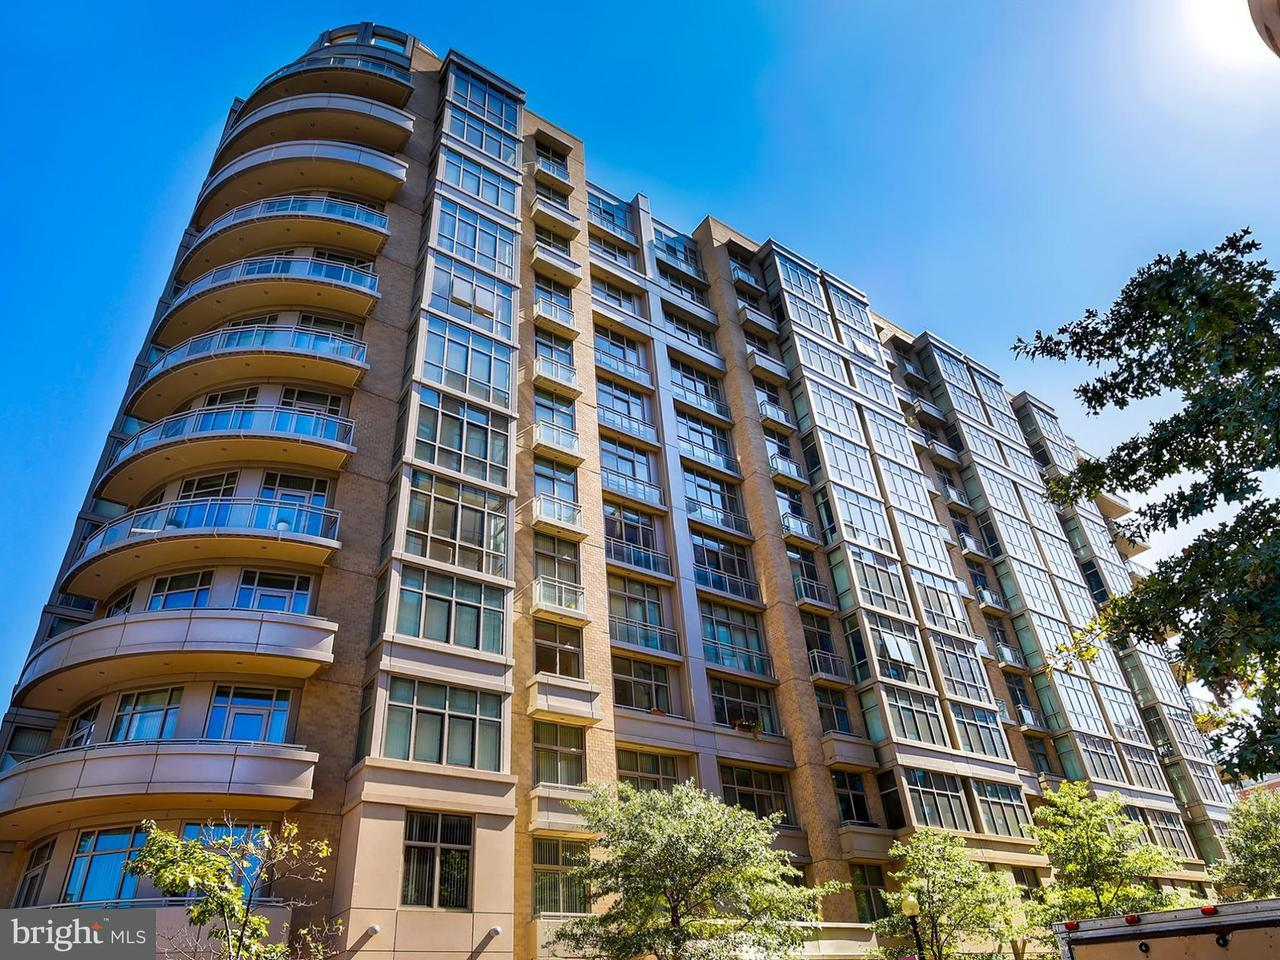 Condominium for Sale at 811 4th St Nw #816 811 4th St Nw #816 Washington, District Of Columbia 20001 United States